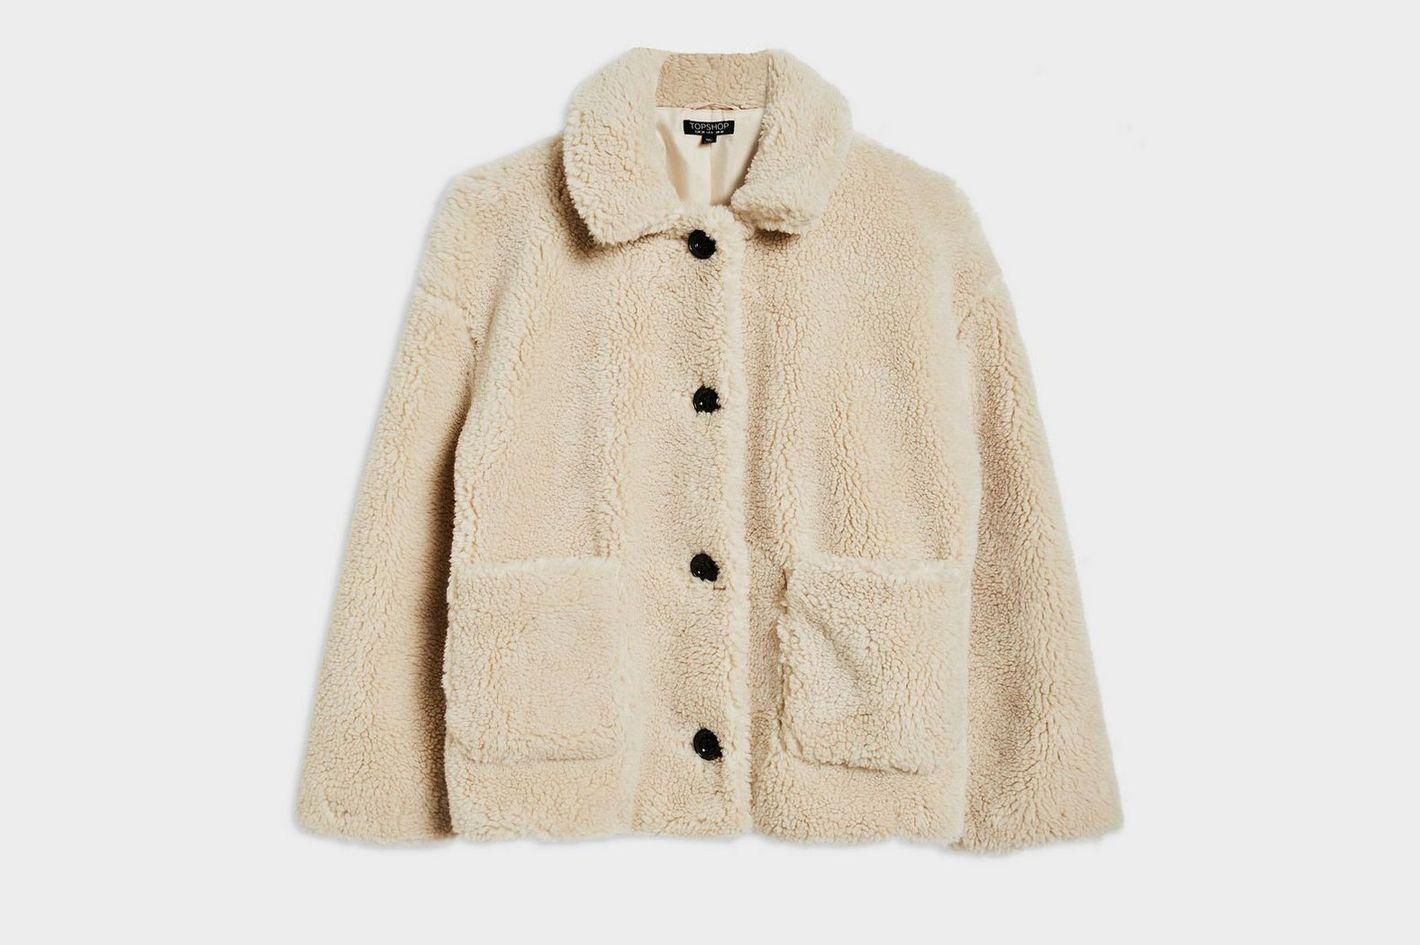 Top Shop Cropped Borg Coat